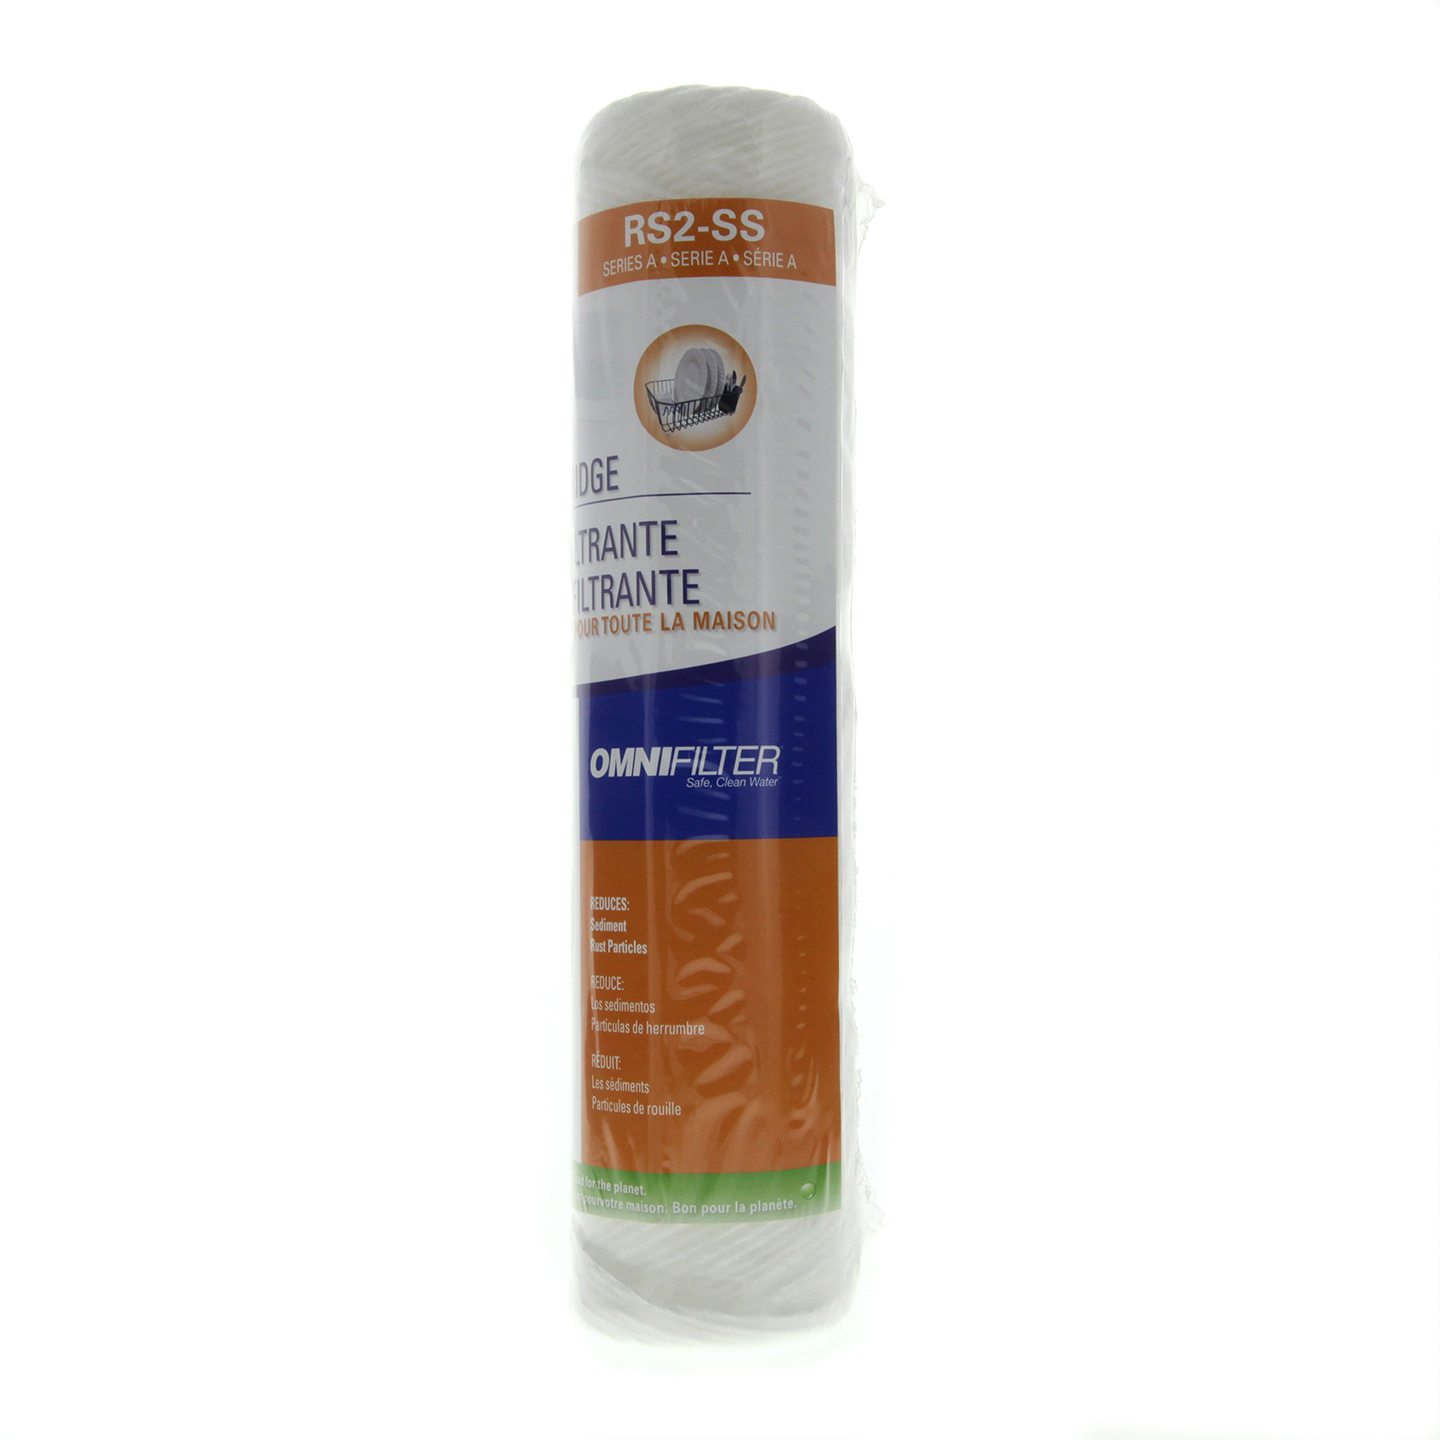 OmniFilter RS2-SS Whole House Water Filter Replacement Cartridge